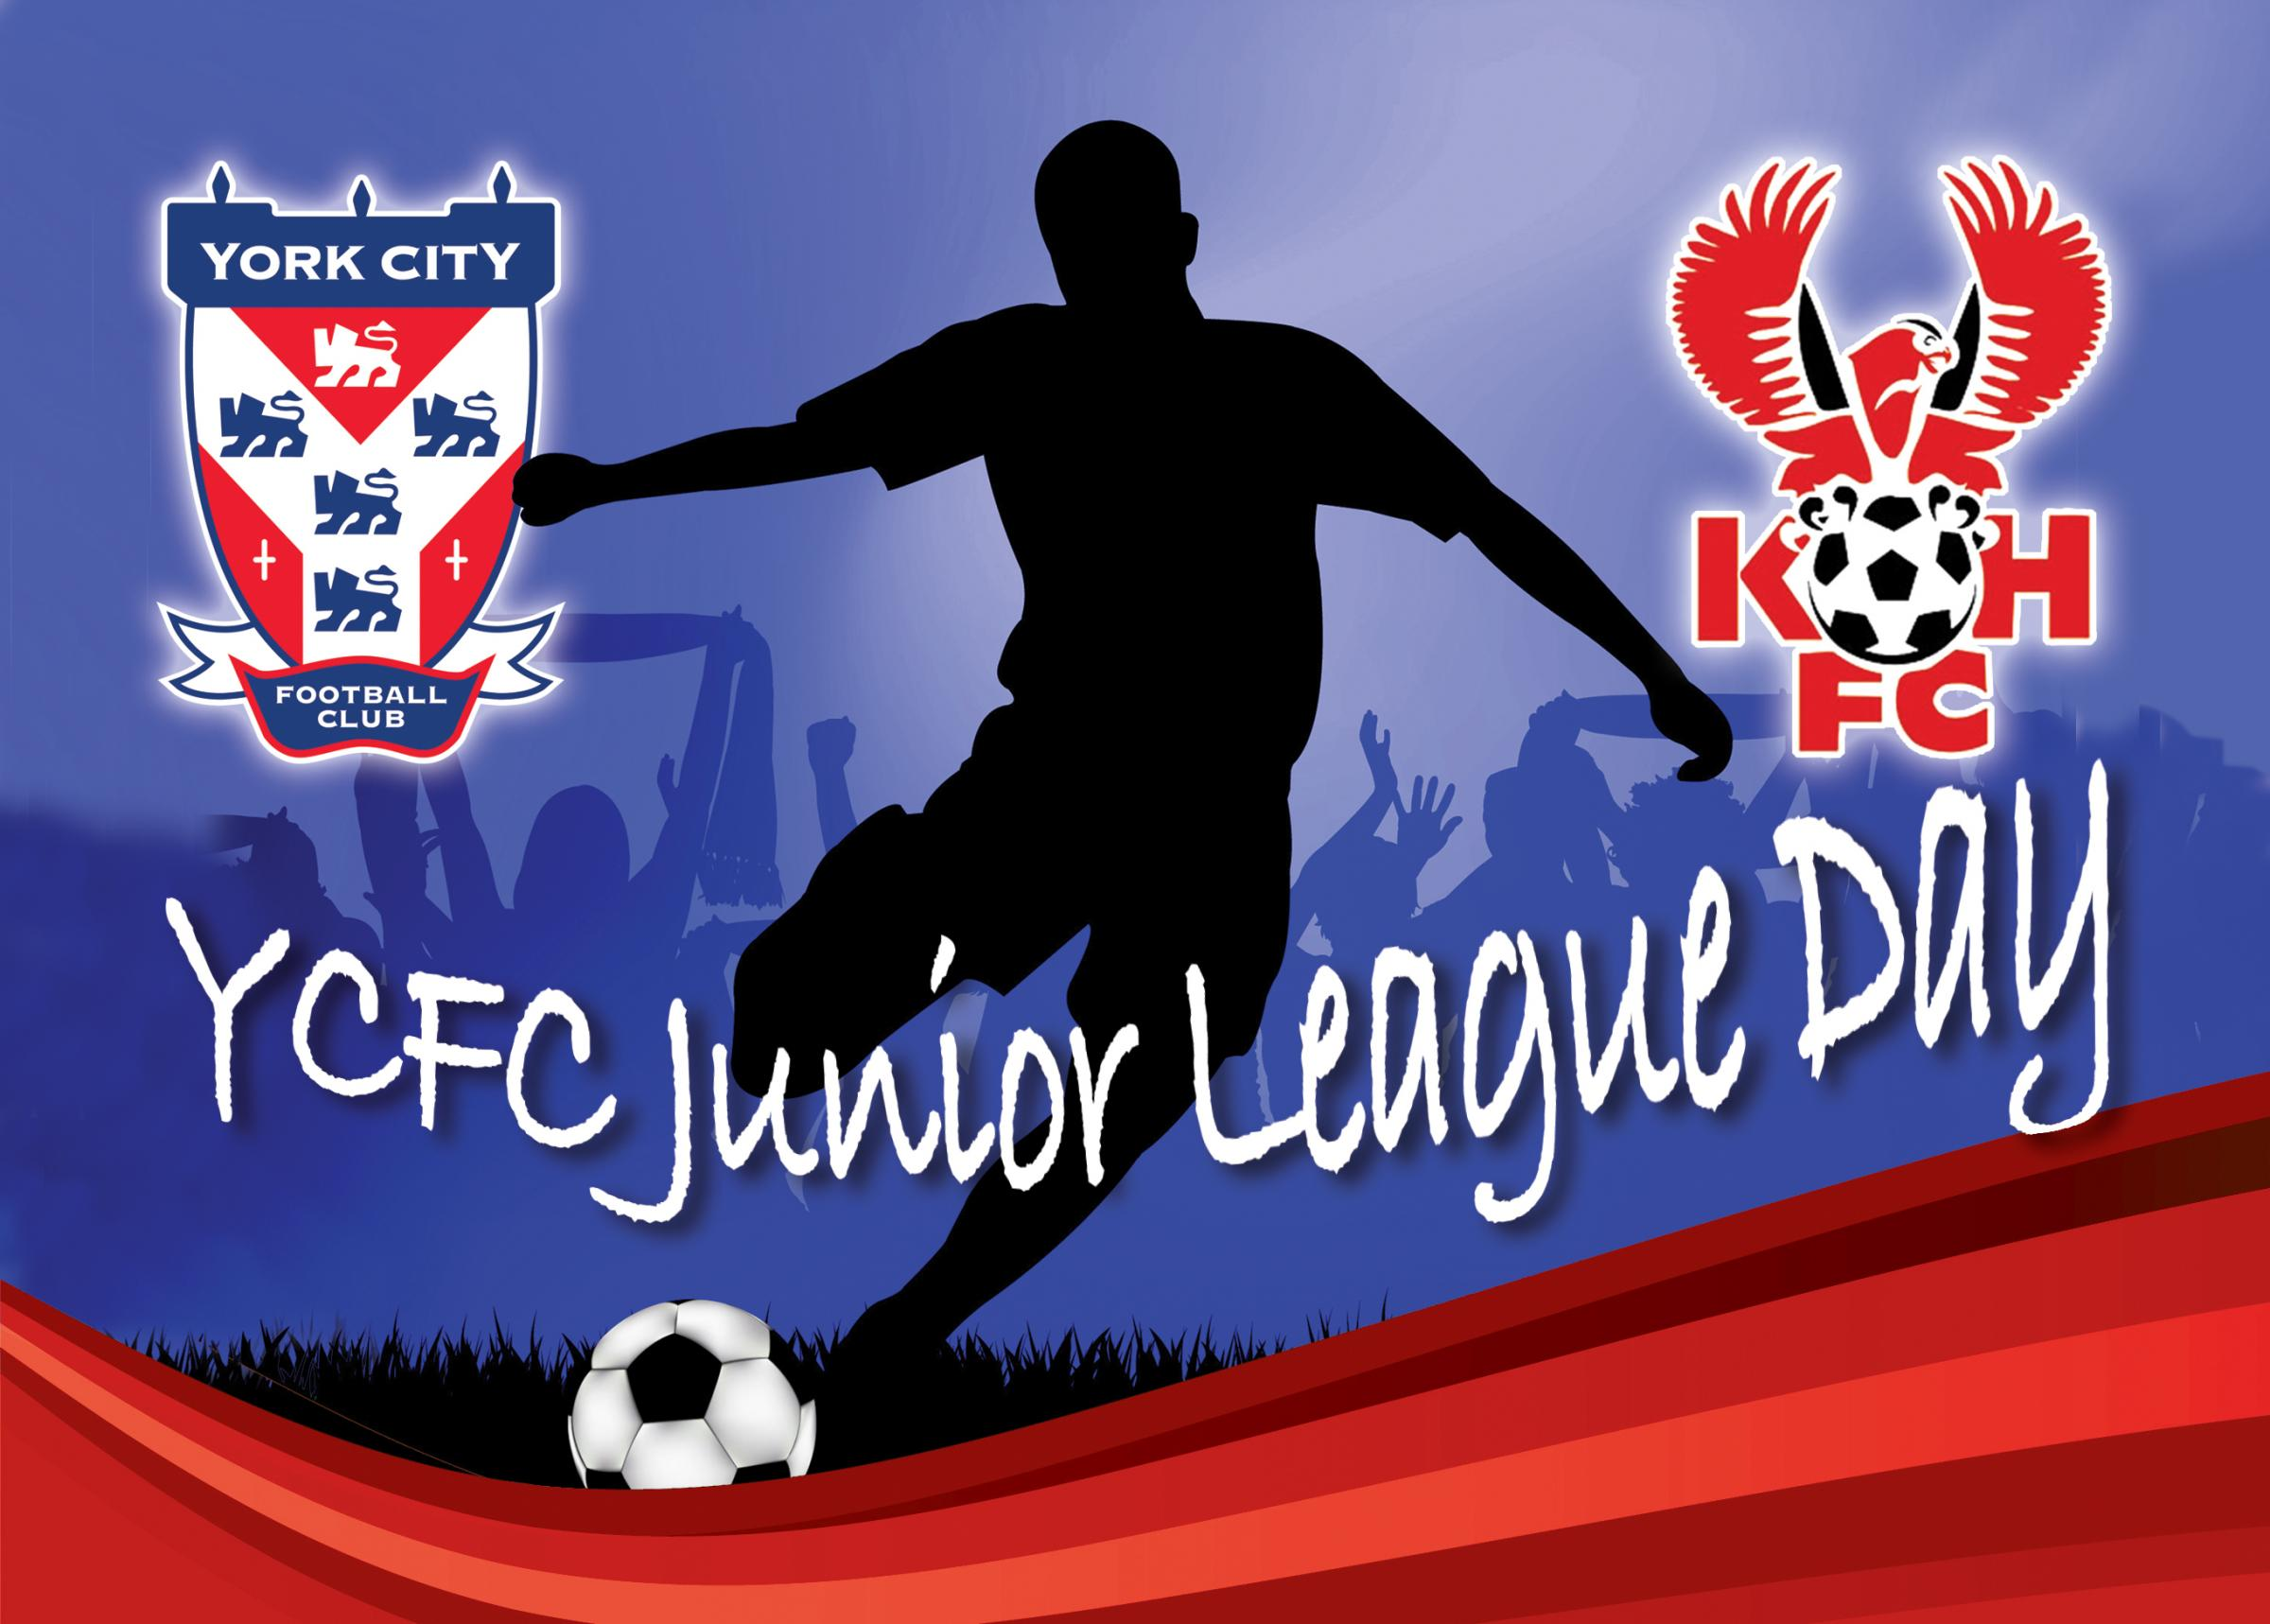 York City are hosting a Junior League Day this Saturday